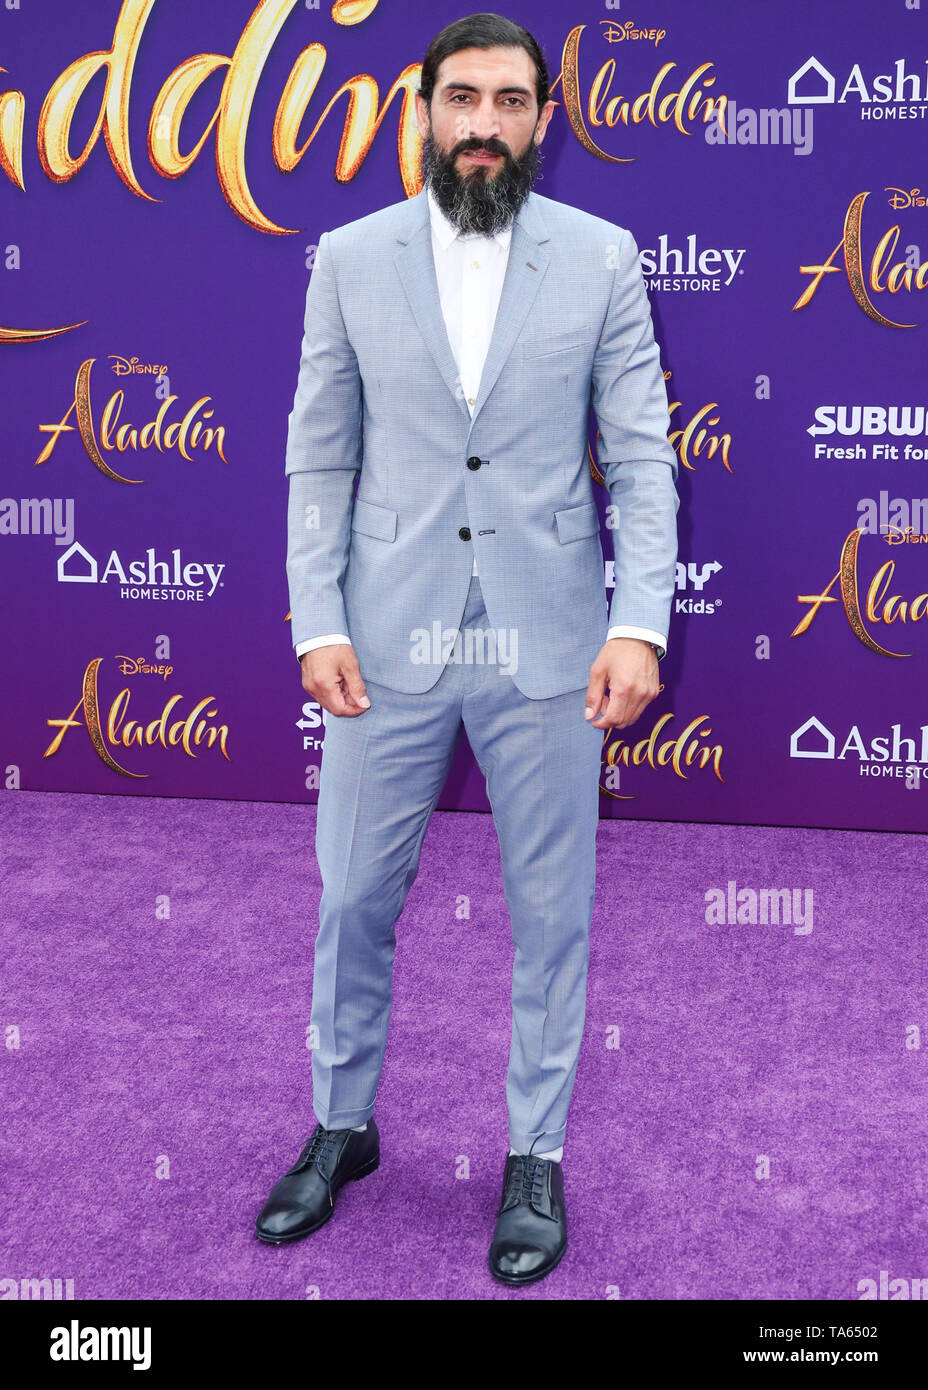 Hollywood, United States. 21st May, 2019. HOLLYWOOD, LOS ANGELES, CALIFORNIA, USA - MAY 21: Actor Numan Acar arrives at the World Premiere Of Disney's 'Aladdin' held at the El Capitan Theatre on May 21, 2019 in Hollywood, Los Angeles, California, United States. (Photo by Xavier Collin/Image Press Agency) Credit: Image Press Agency/Alamy Live News - Stock Image